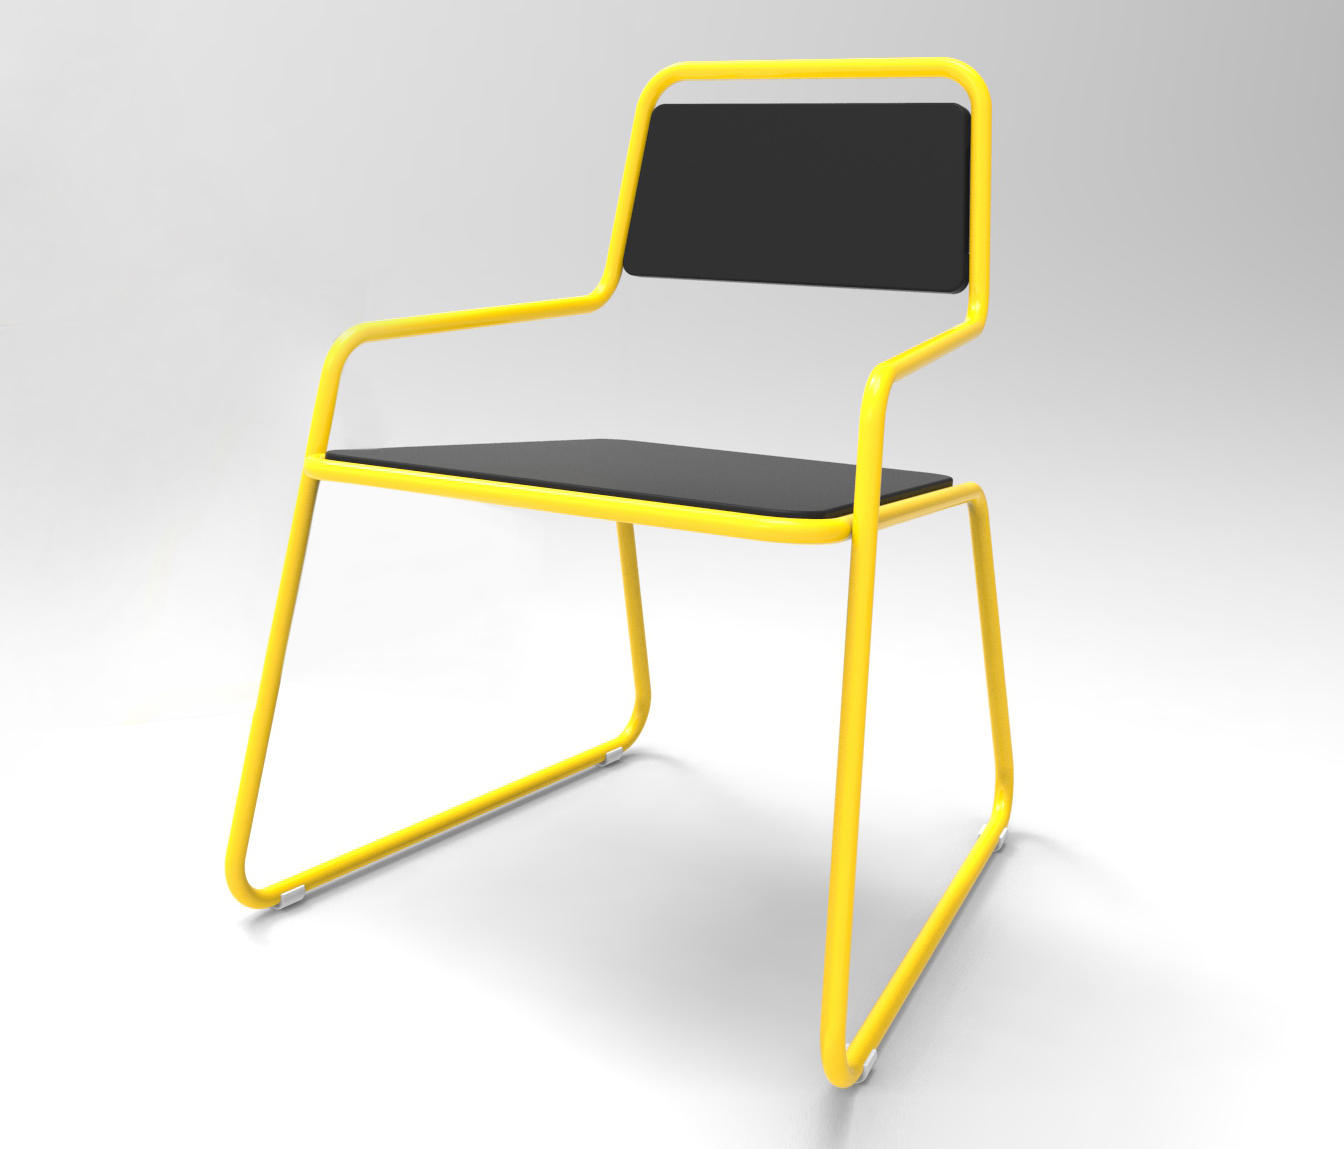 South Chair Multipurpose Chairs By Luxxbox Architonic